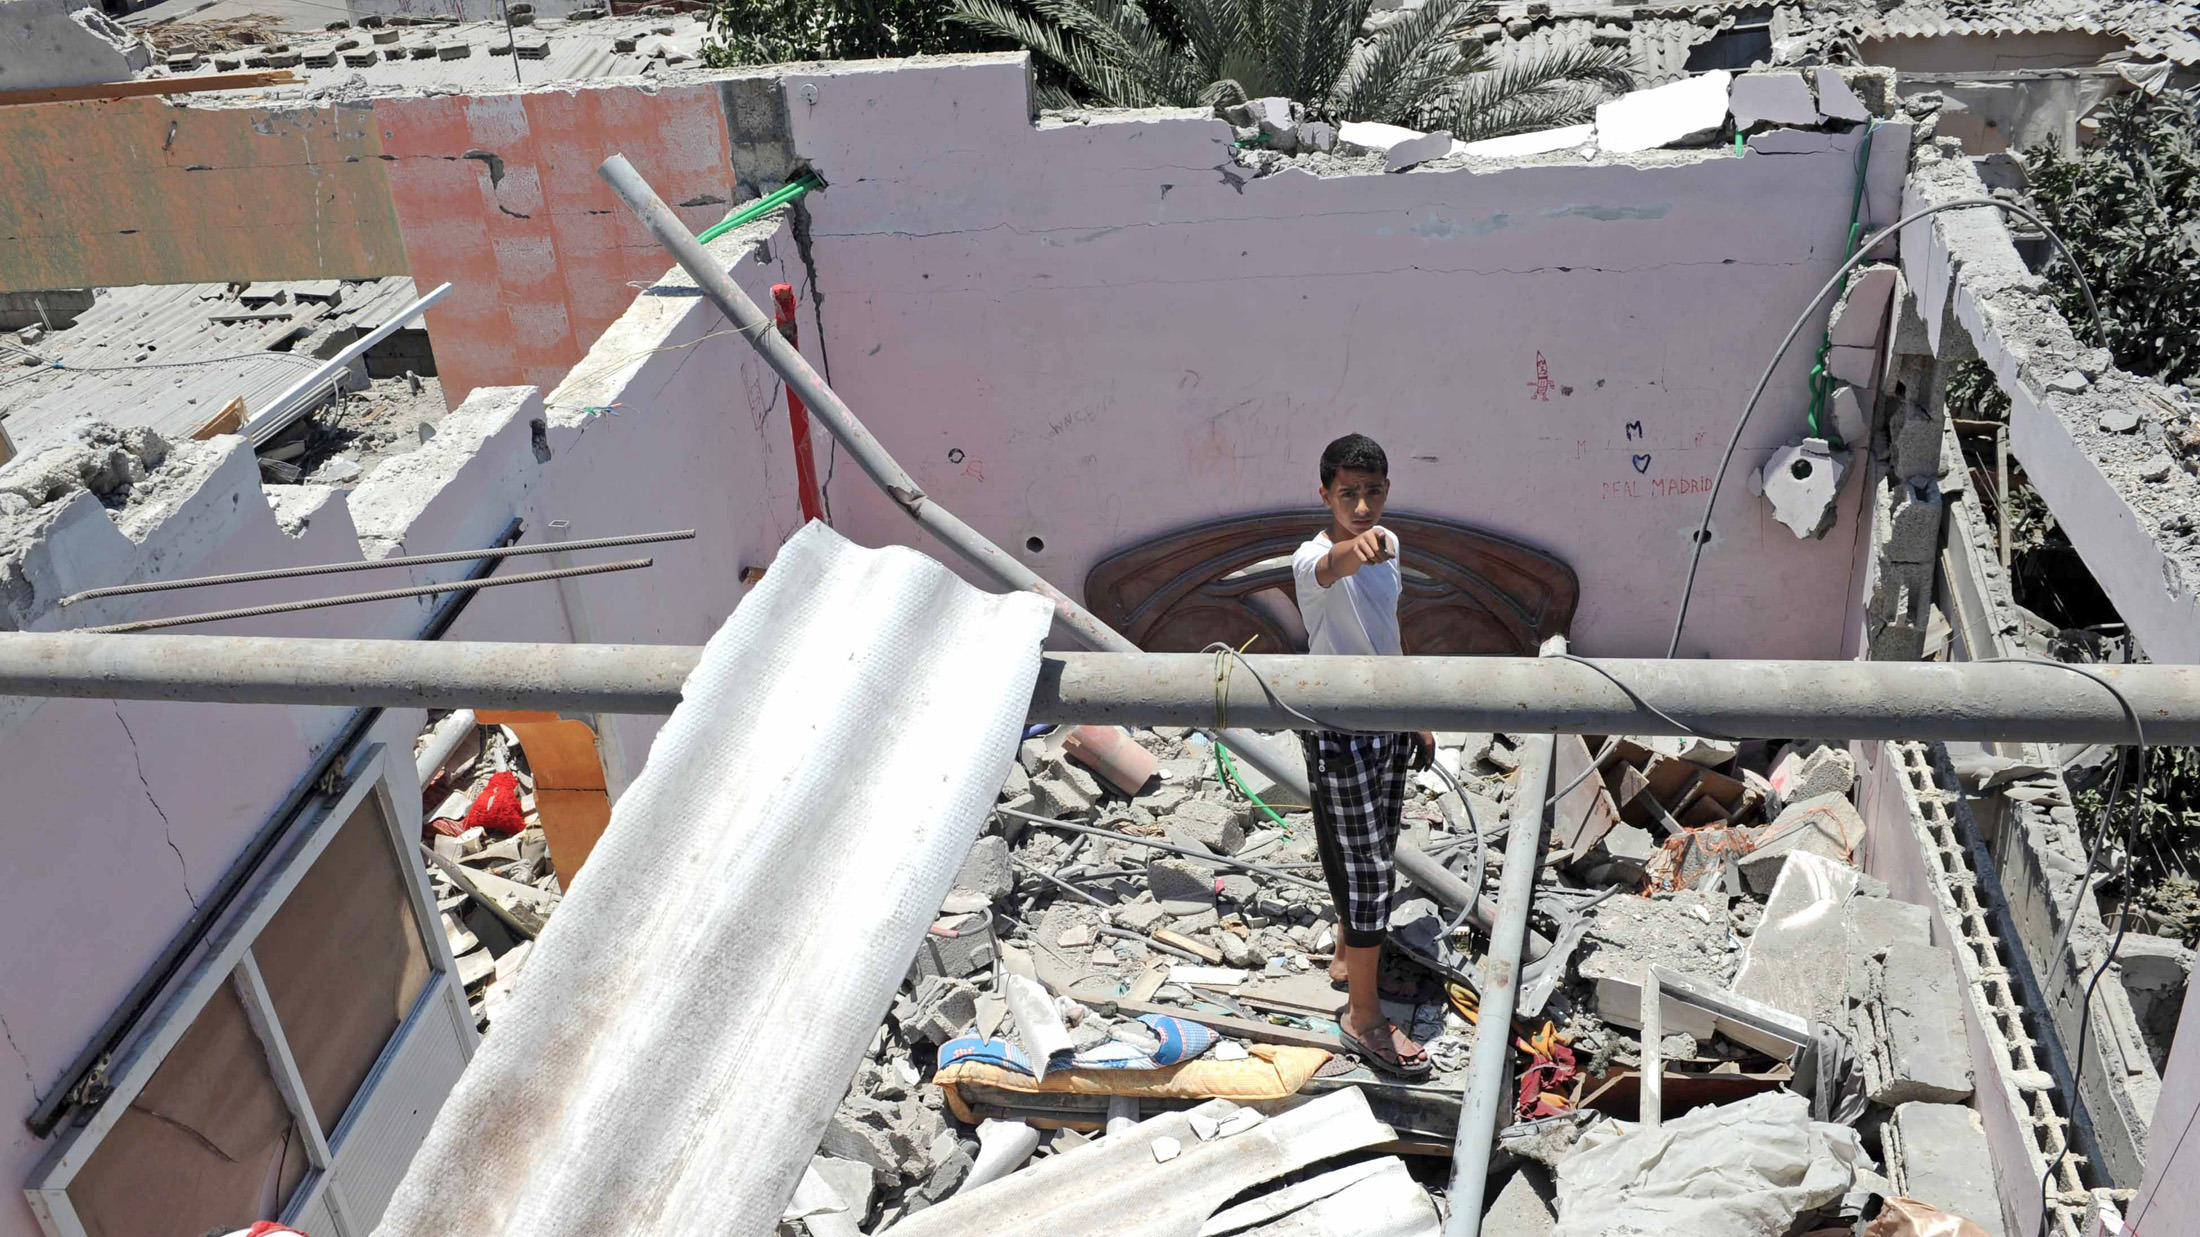 Palestinians inspect the remains of a house which was destroyed during an air strike in Central Bureij refugee camp, in the Middle Area of the Gaza Strip.